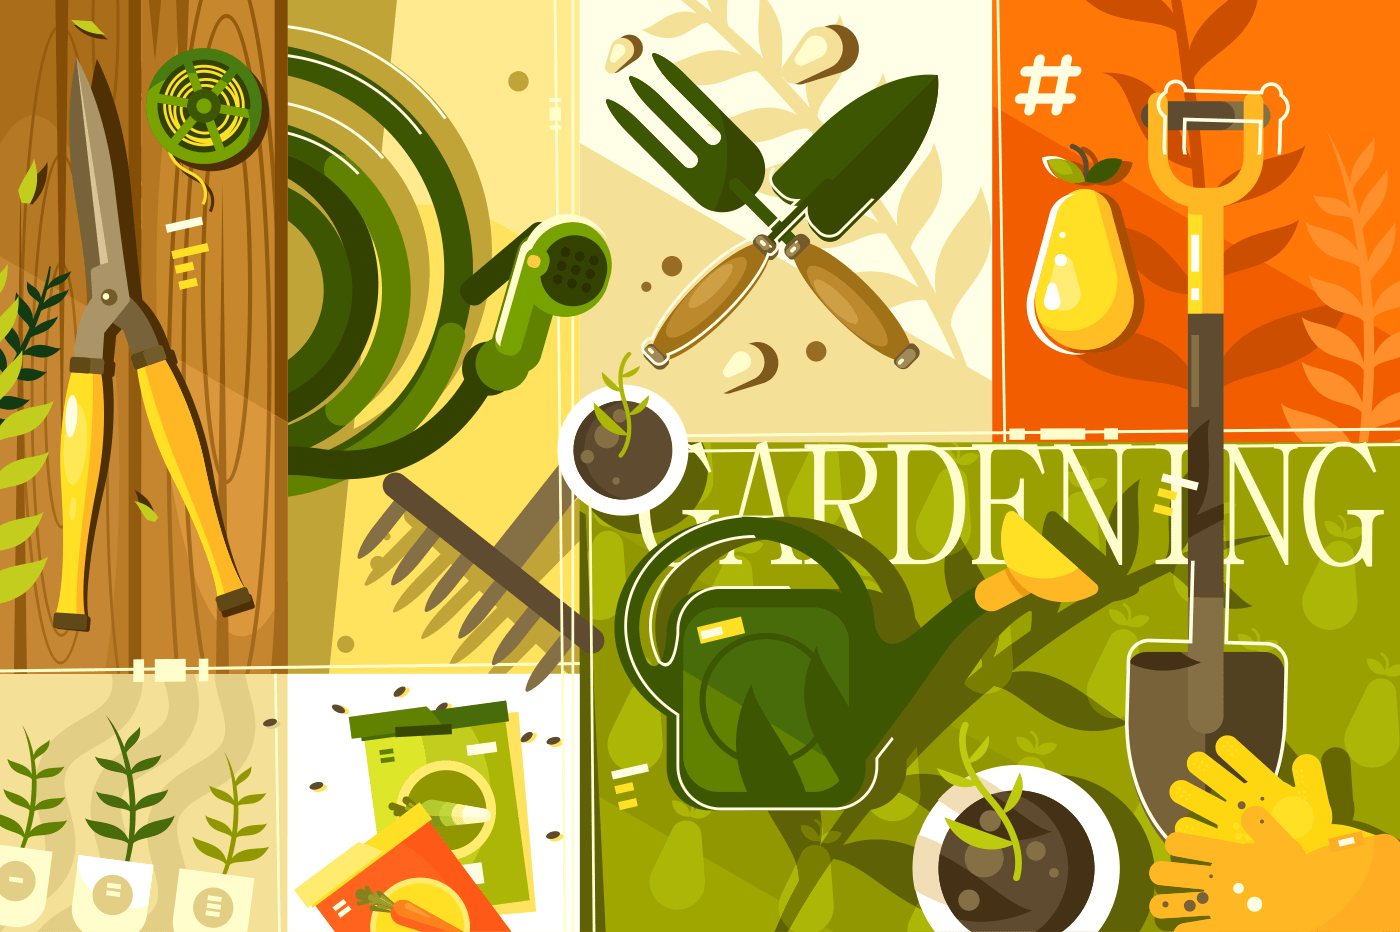 Gardening abstract background. Tools for garden, shovel and secateurs, vector illustration